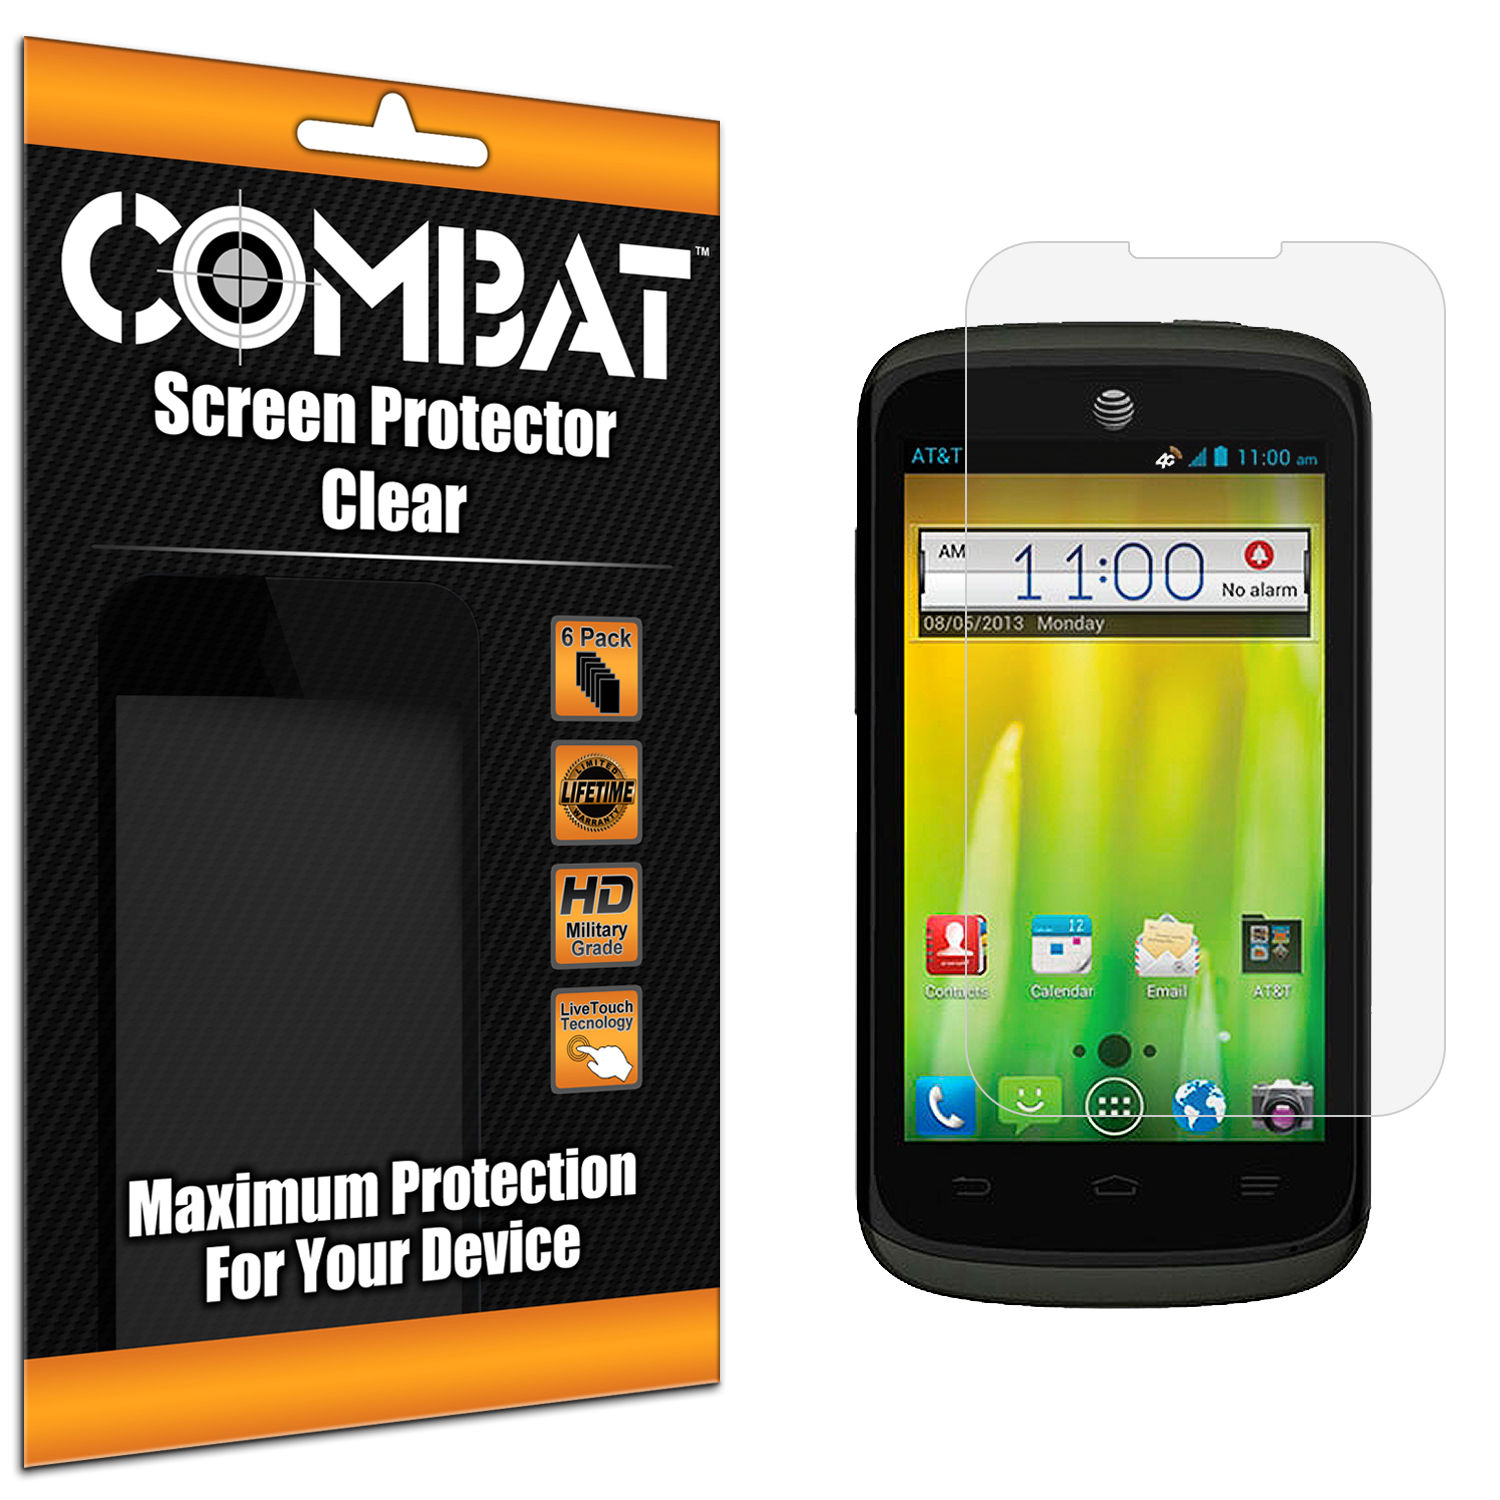 ZTE Radiant Combat 6 Pack HD Clear Screen Protector